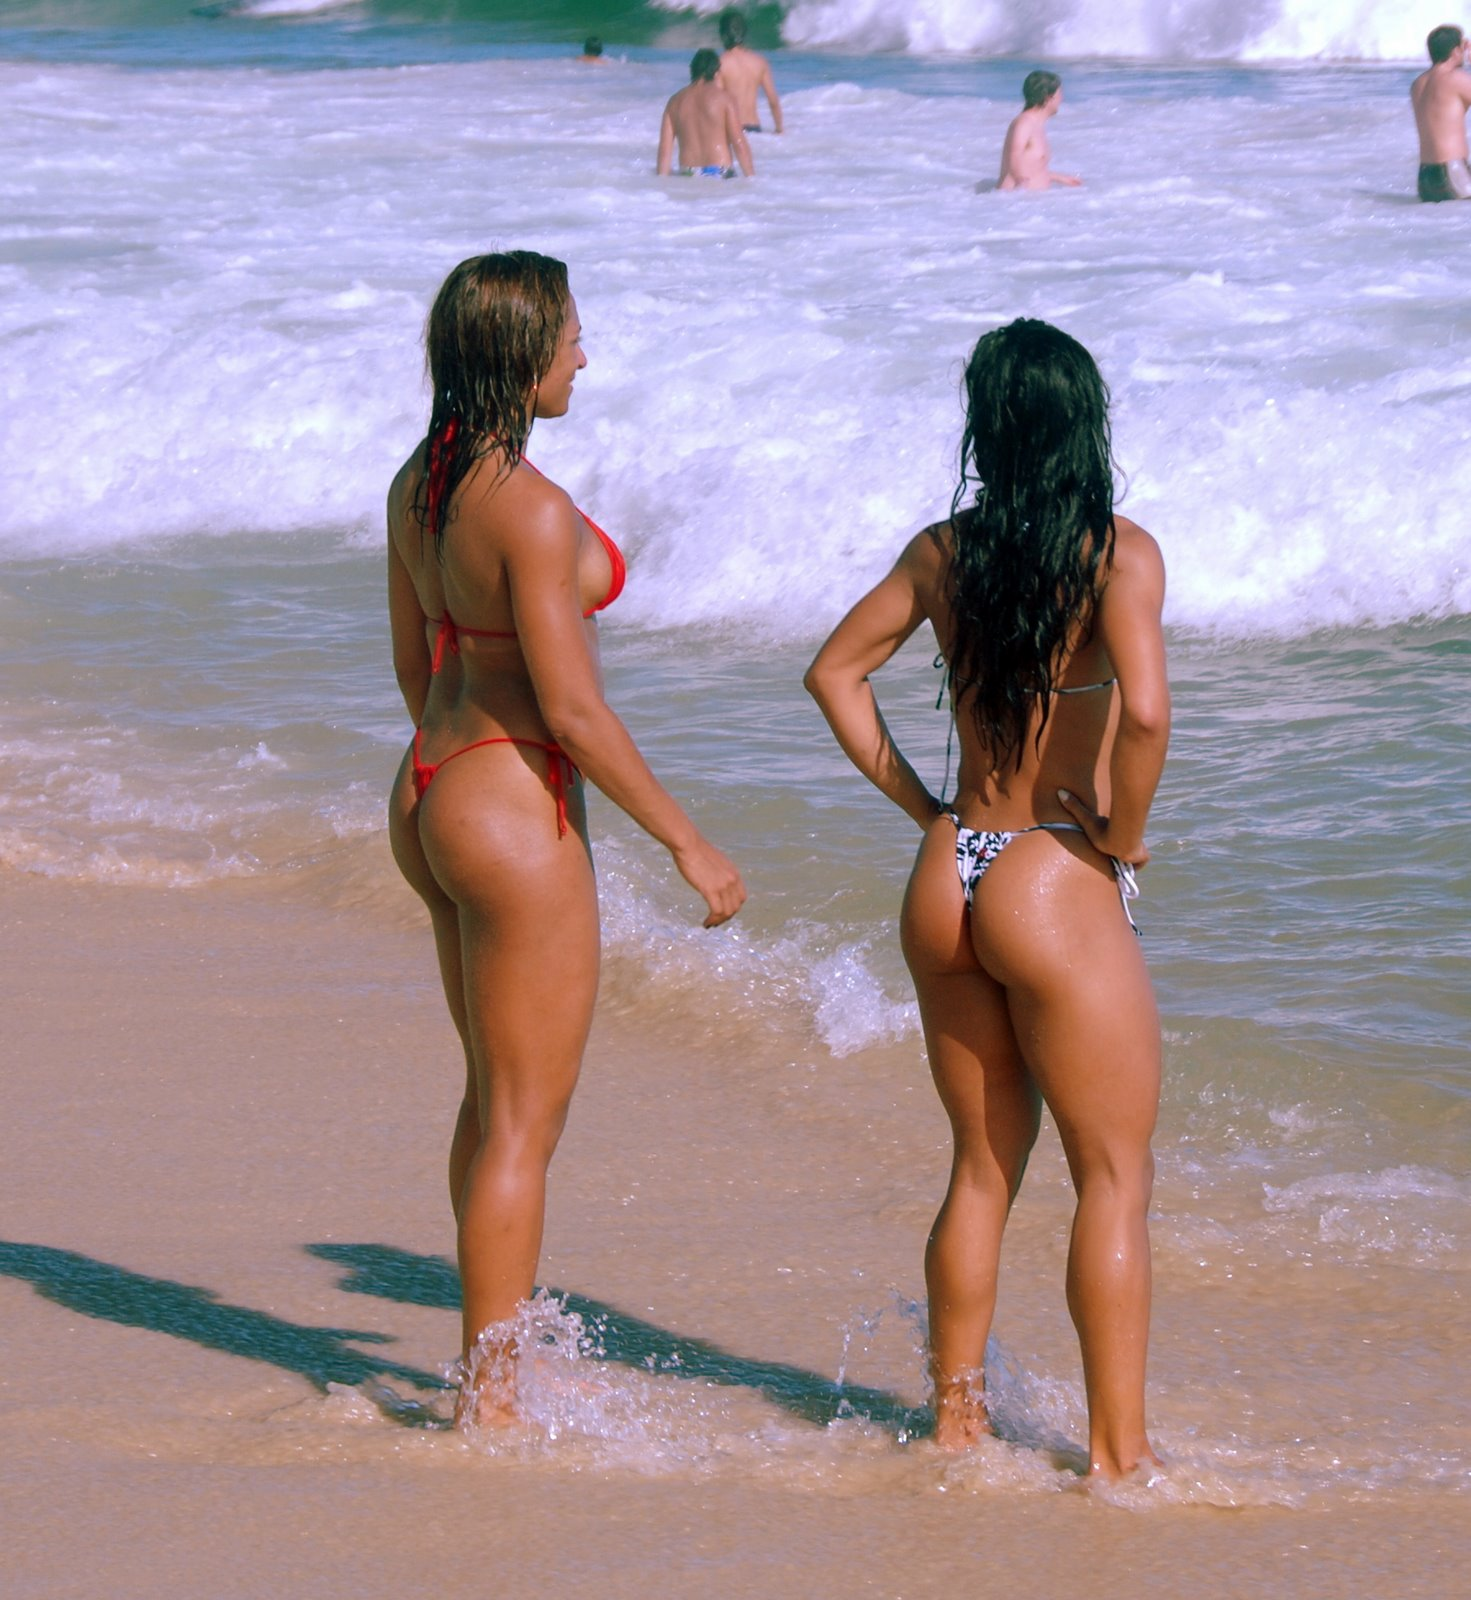 [girls+from+ipanema]